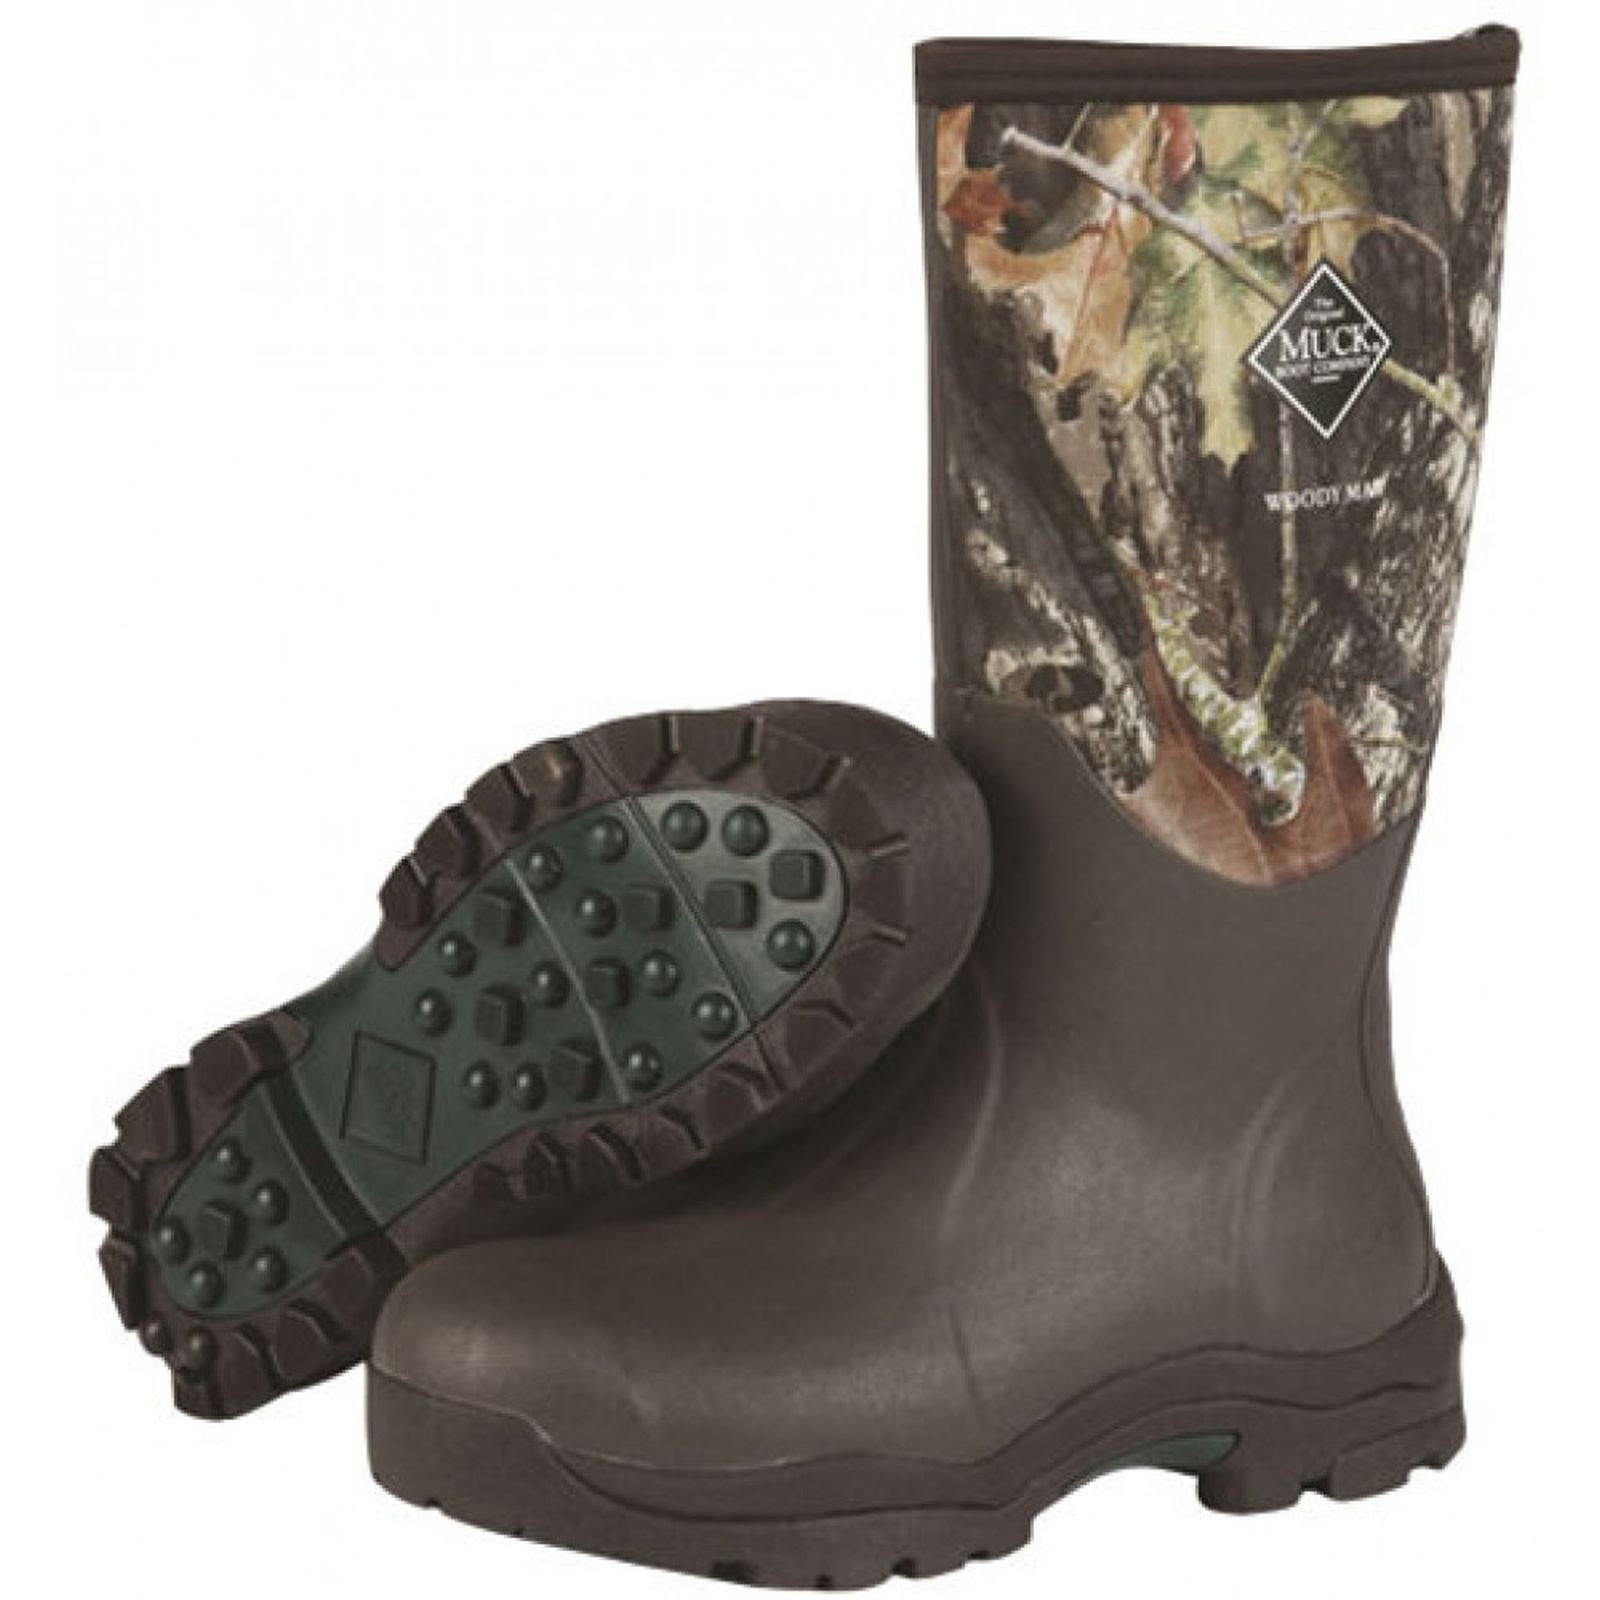 Muck Boots Womens Woody Max Boot - Womens 8